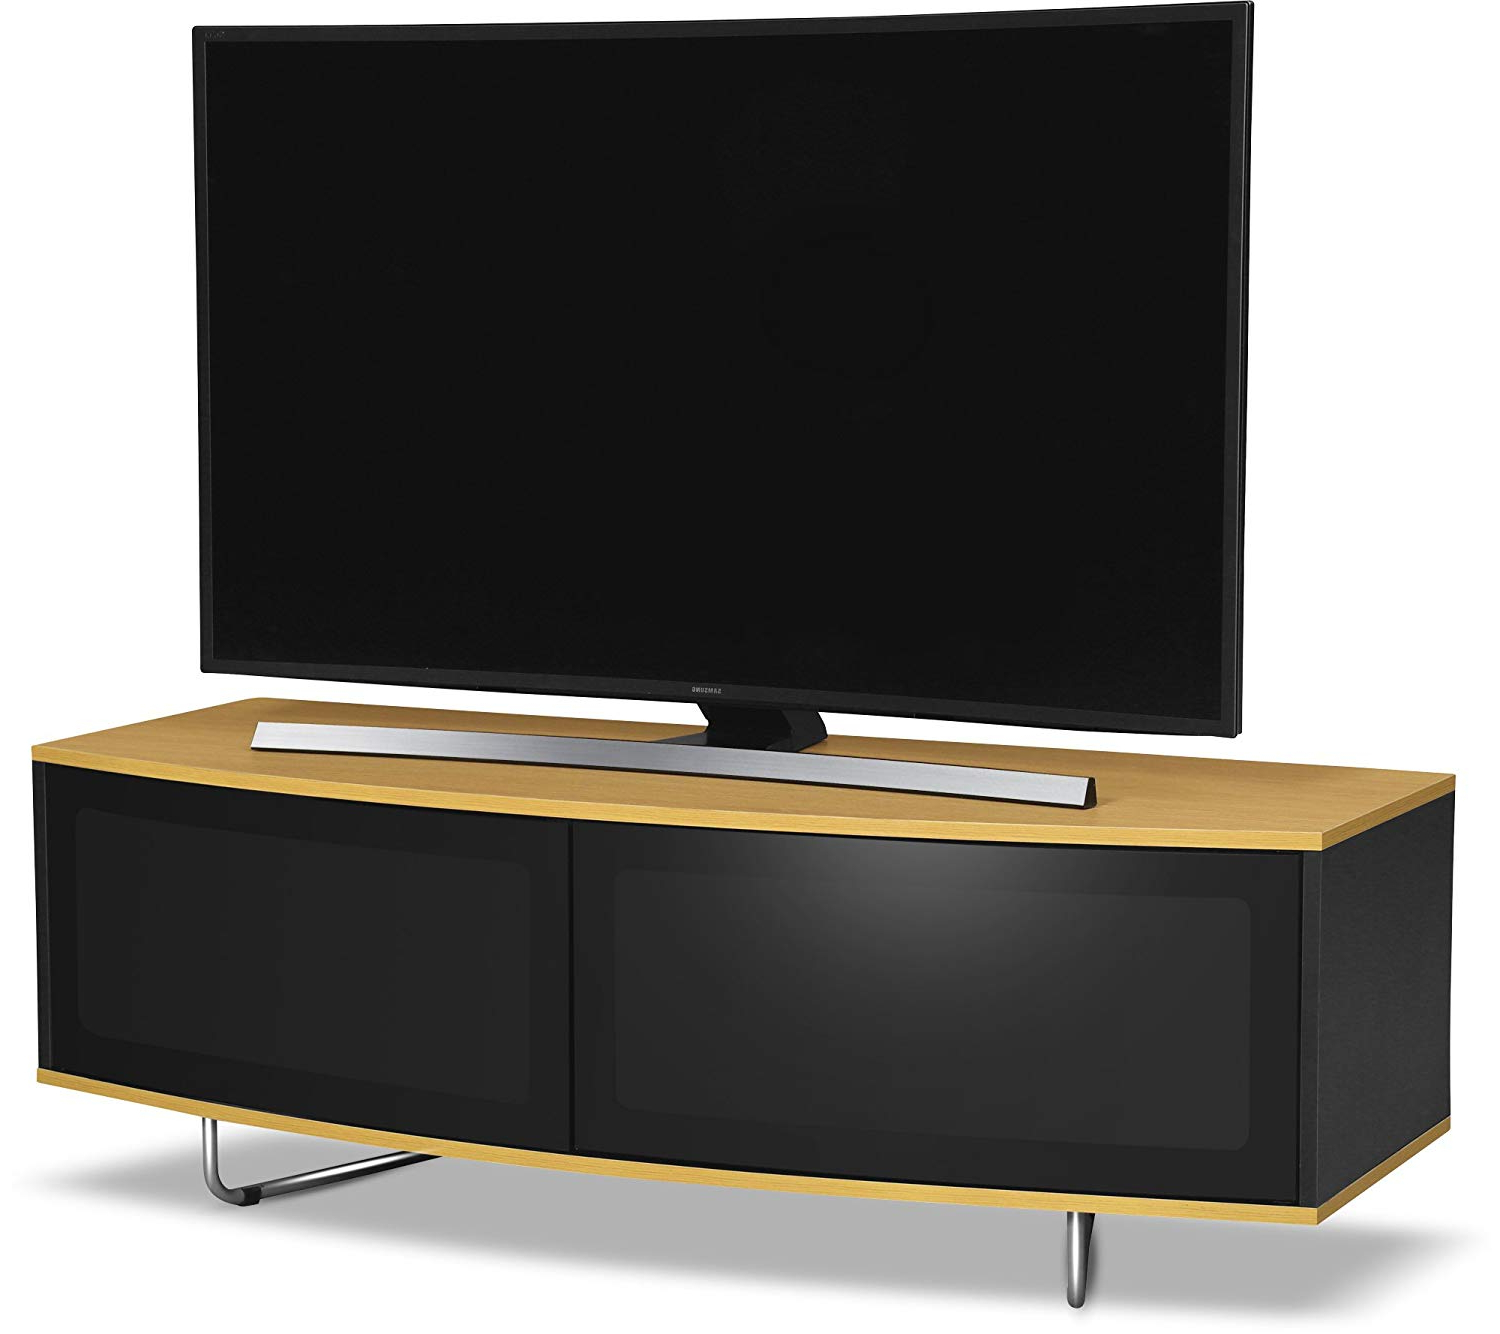 Favorite Wooden Tv Cabinets With Glass Doors With Regard To Centurion Supports Caru Gloss Black And Gloss Oak: Amazon.co (View 17 of 20)